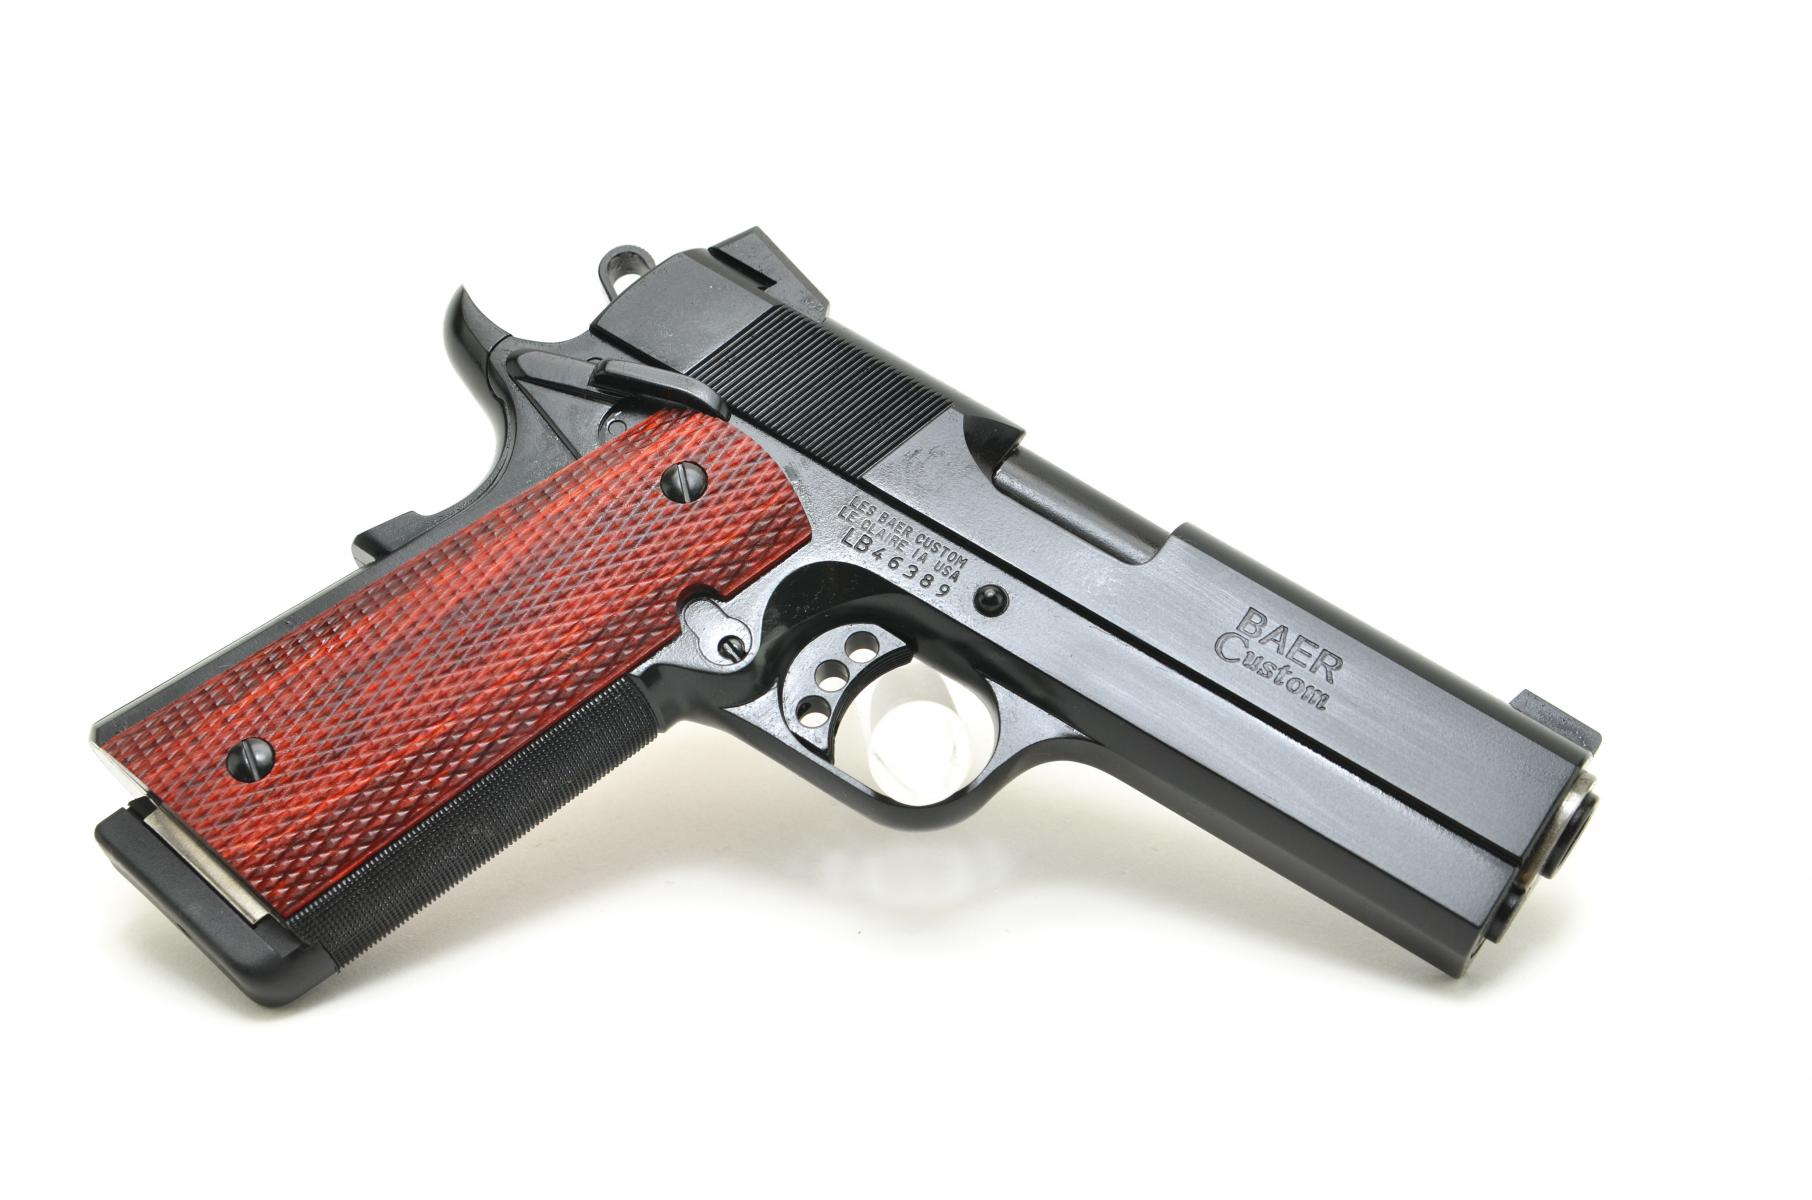 "Les Baer Monolith Commanche Heavyweight 1911 |.45ACP 5"" Barrel, Dupont S Coating, Full Dust Cover, Ambi Safety, Adjustable Rear Sight, 2 Magazines"